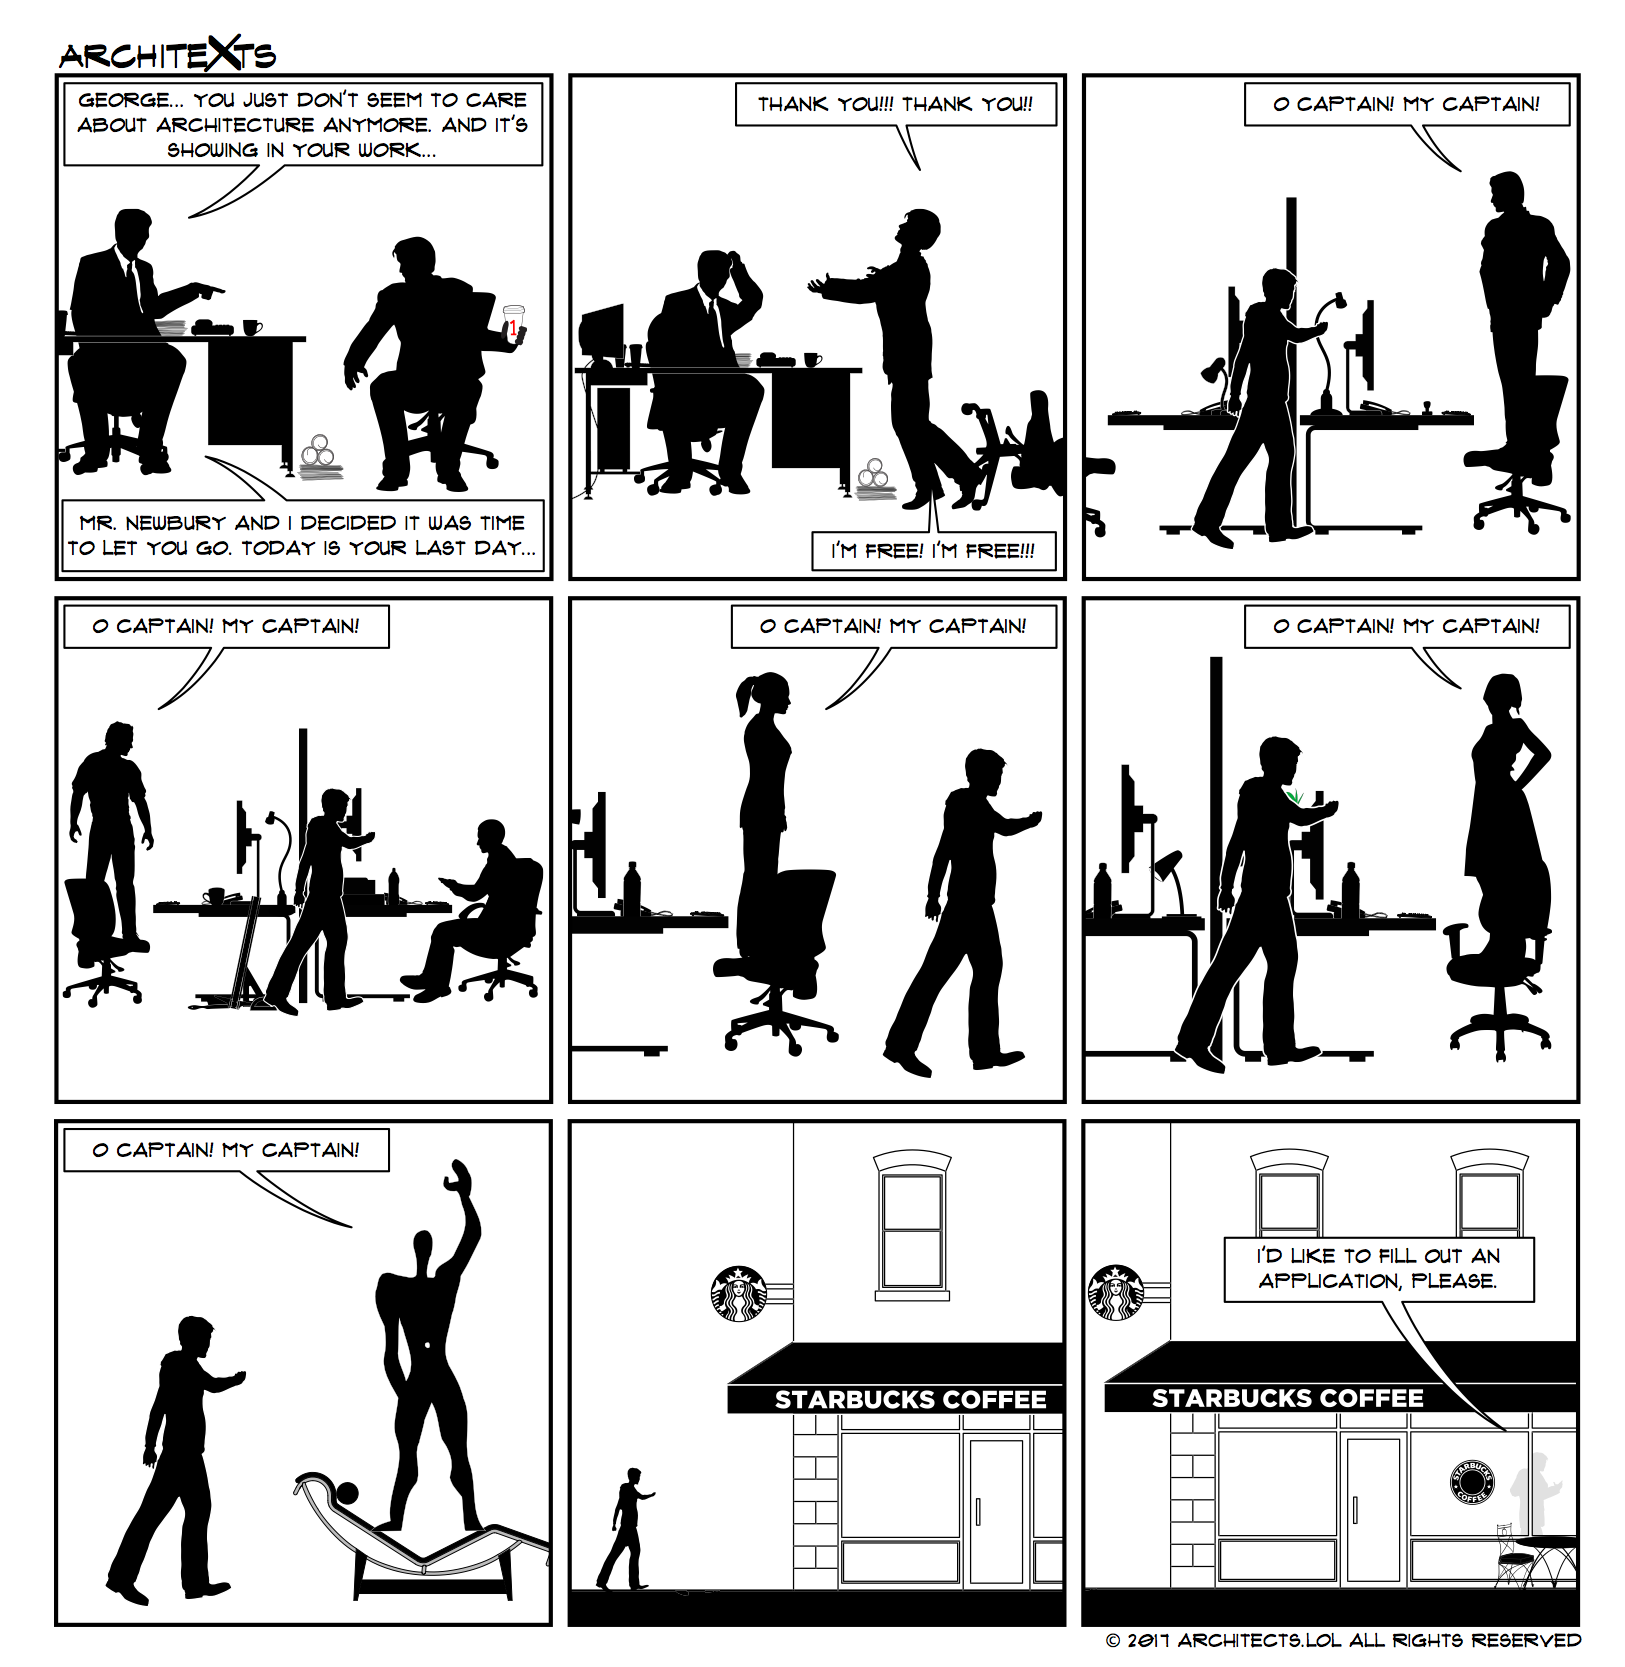 Architexts - A webcomic about architectural professionals